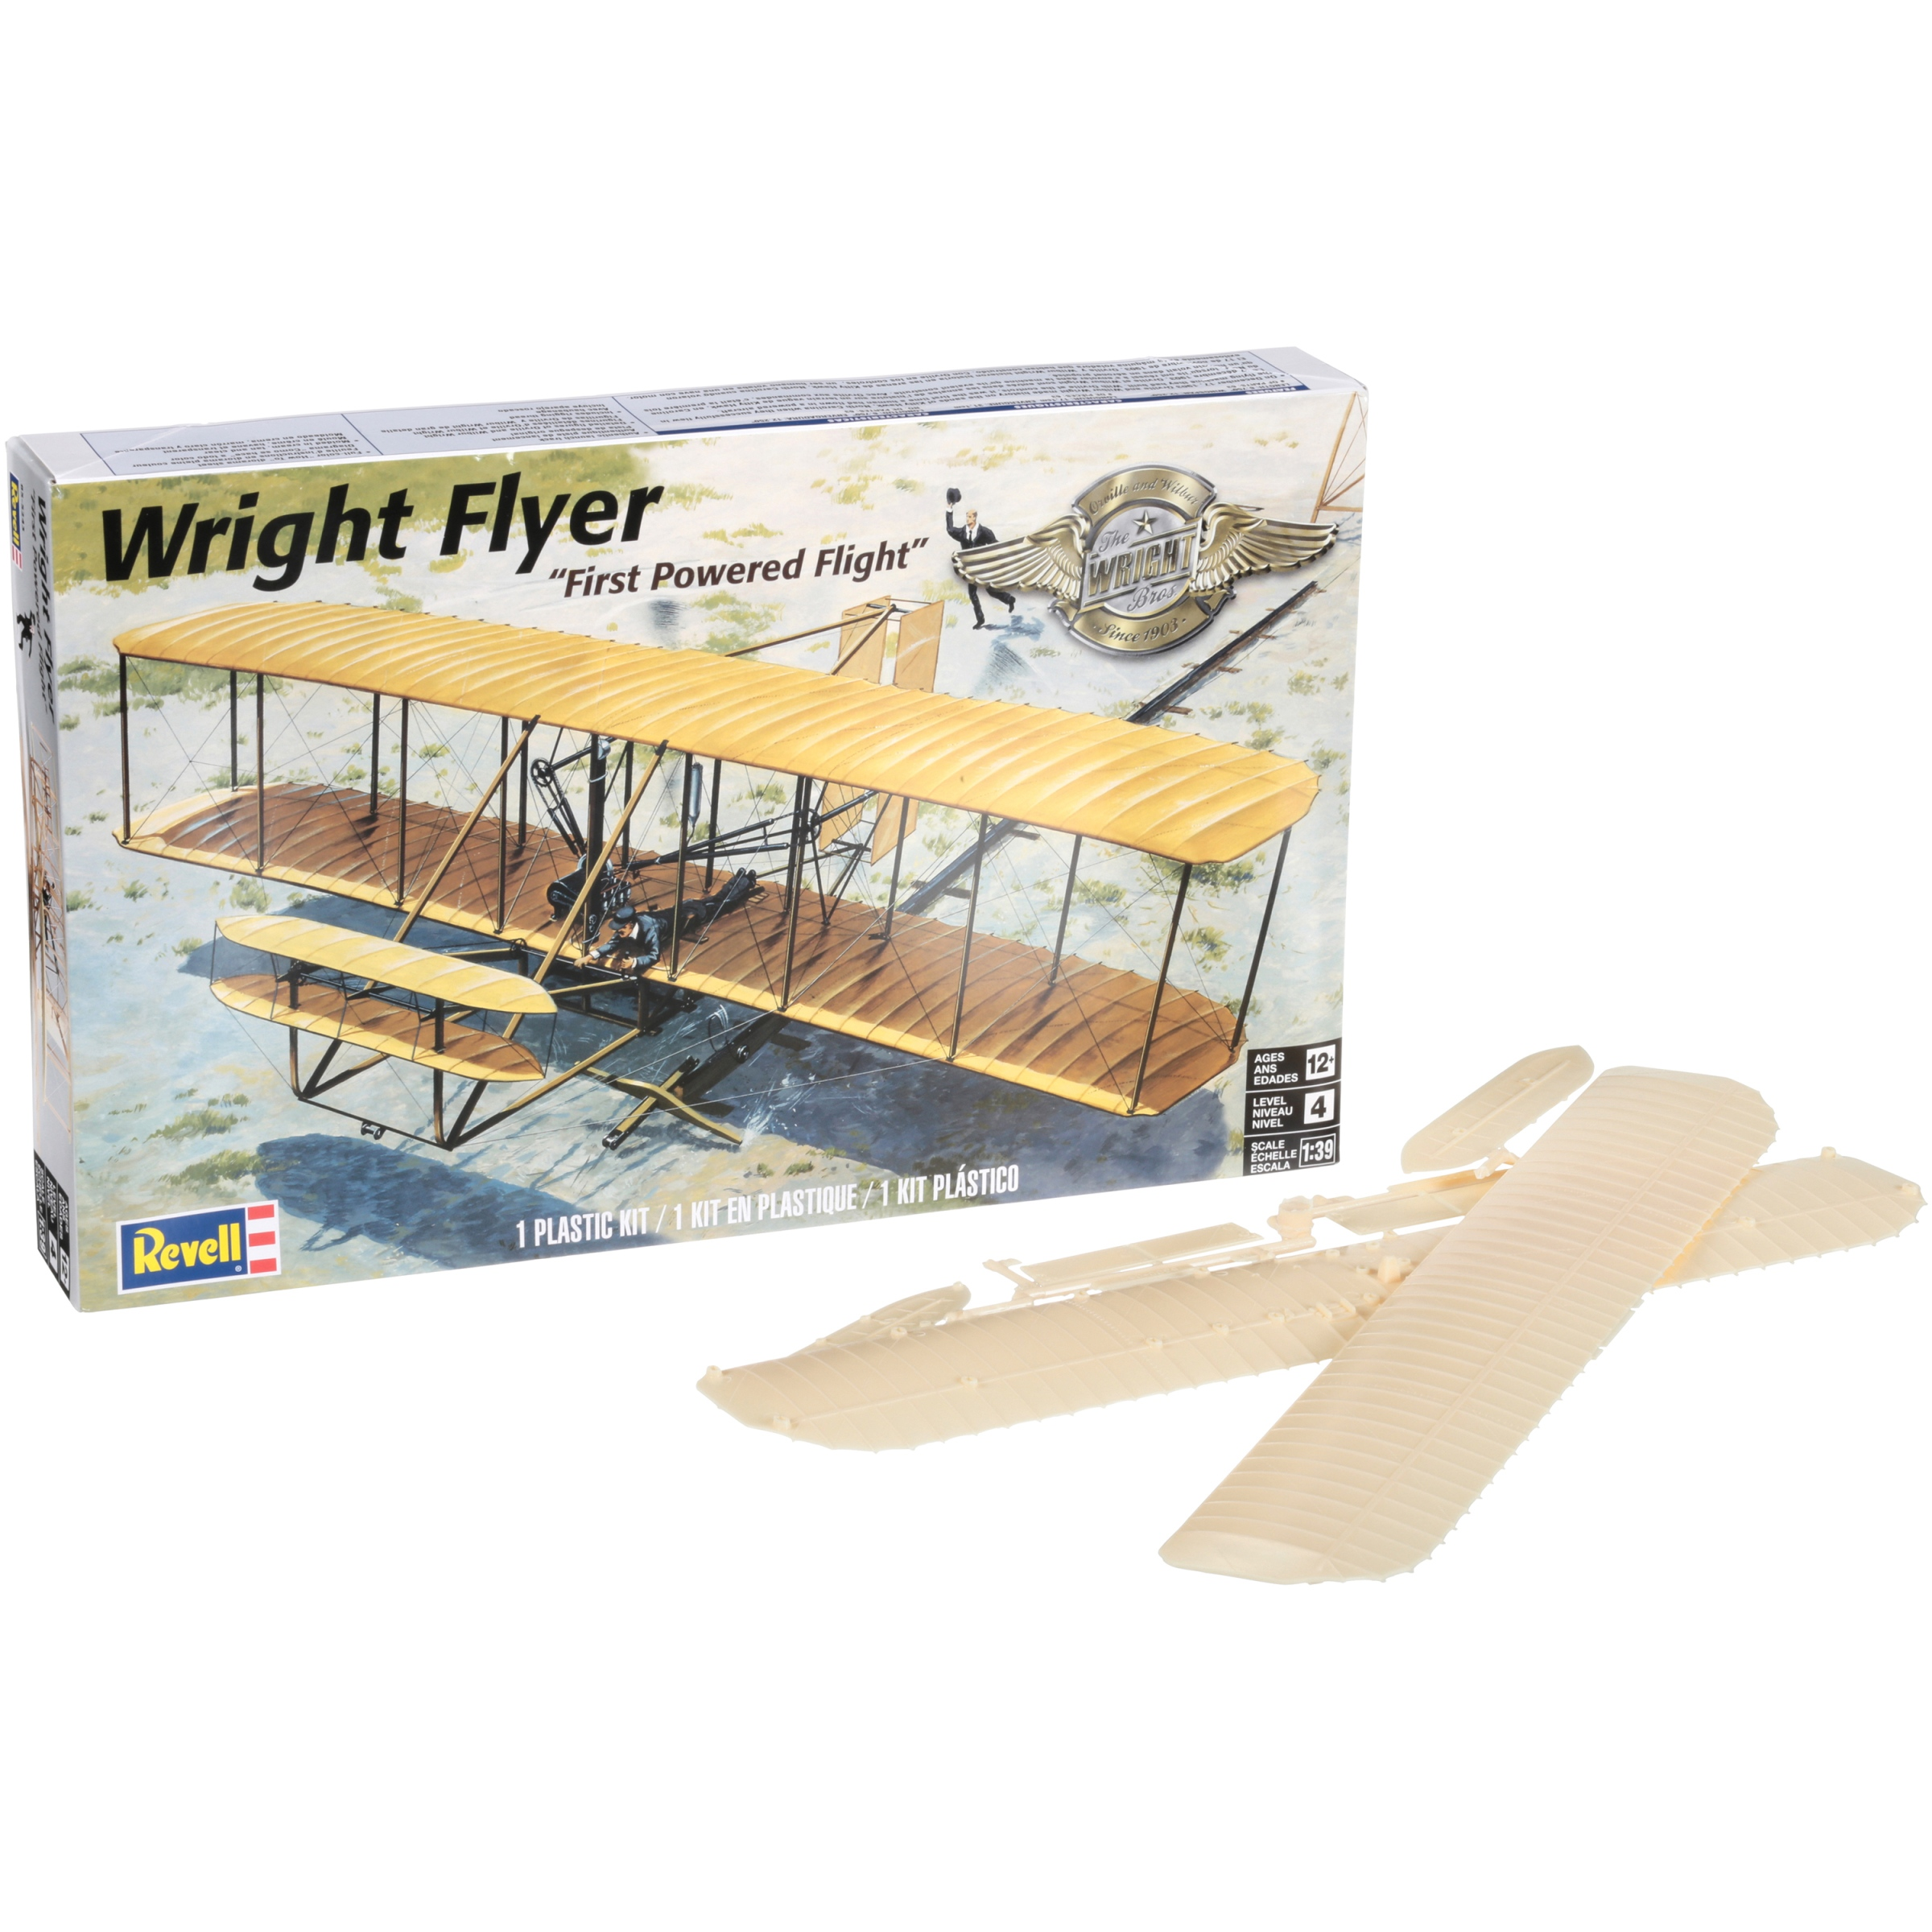 Revell® Wright Flyer Plastic Model Plane Kit 65 pc Box